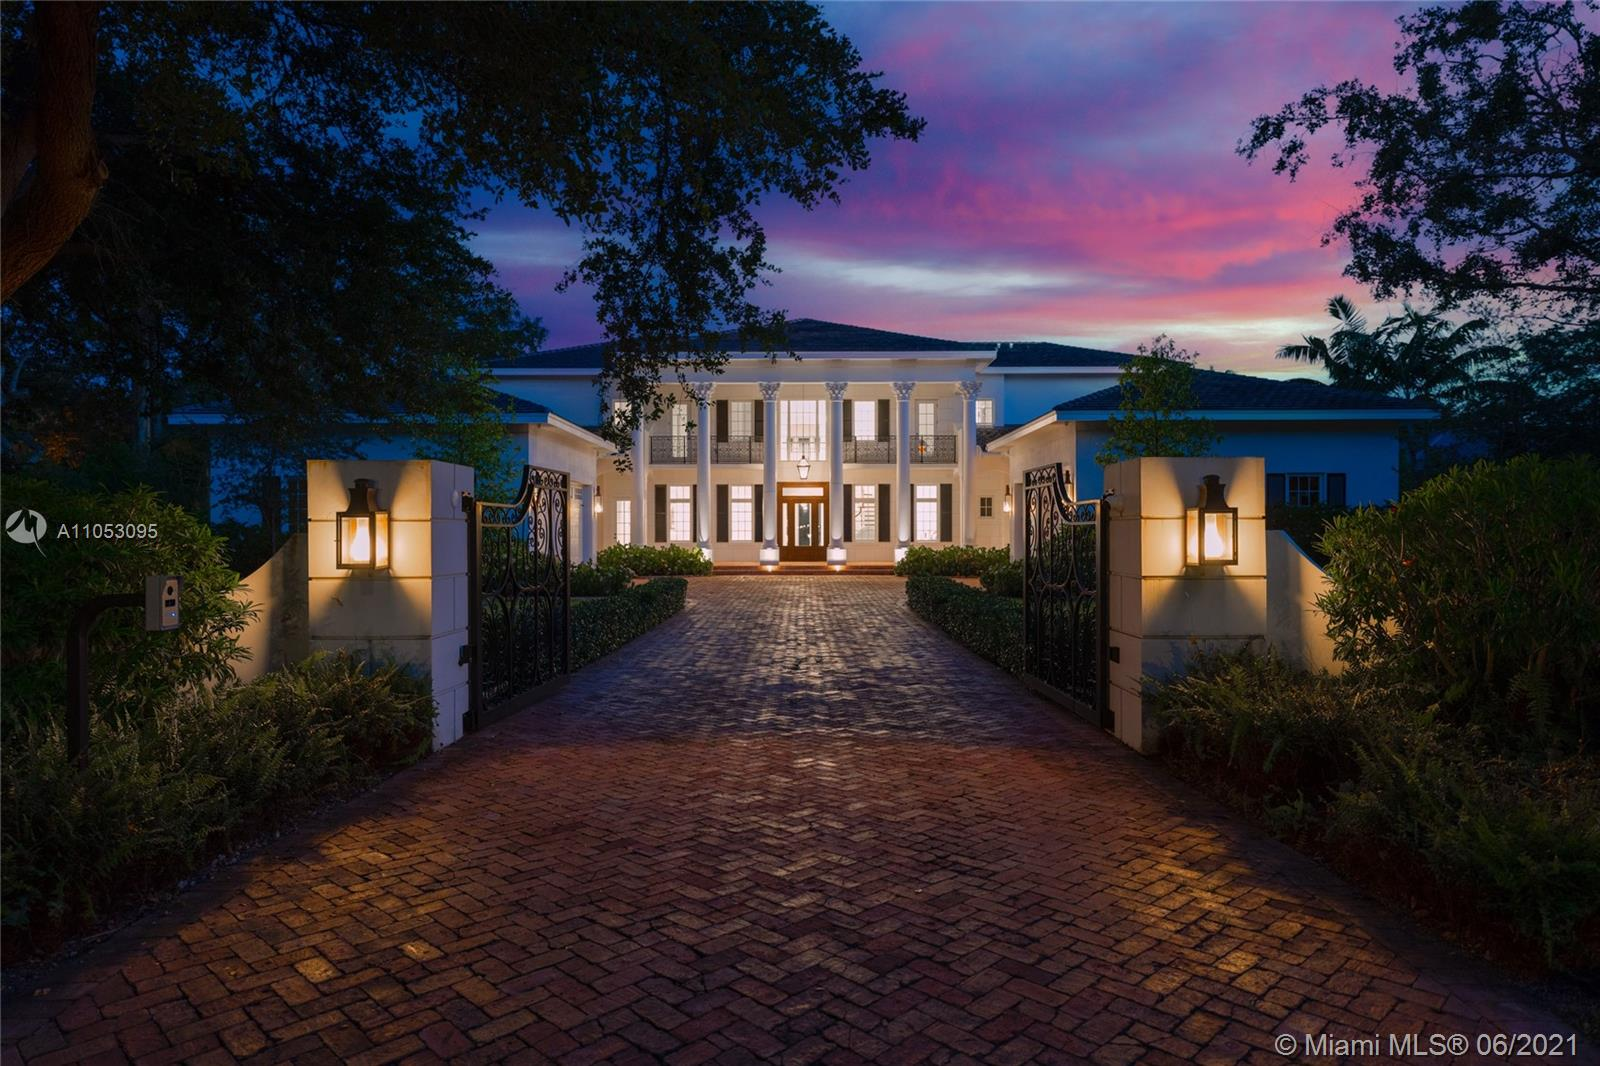 Come home to a one-of-a-kind, 13,000+ Sq Ft custom-built, newly designed Southern-inspired Pinecrest masterpiece-elegant craftsmanship set on an acre+ for indoor/outdoor living. Enter through a meticulously landscaped setting leading to the estate's majestic entryway, with vaulted ceilings. Enjoy spacious open living, with wide planked wood floors & Schonbeck Swarovski chandeliers. Step into the magazine-worthy chef's kitchen with a large marble island & double Viking range. Take the elevator or staircase to breathtaking views of the backyard & infinity pool. Unwind in the luxurious master suite with spa-inspired Victoria + Albert soaking tub, enclosed shower & private steam room. This estate has so much more, a cinema, pet shower, a high-tech security & sound system. No detail was spared.